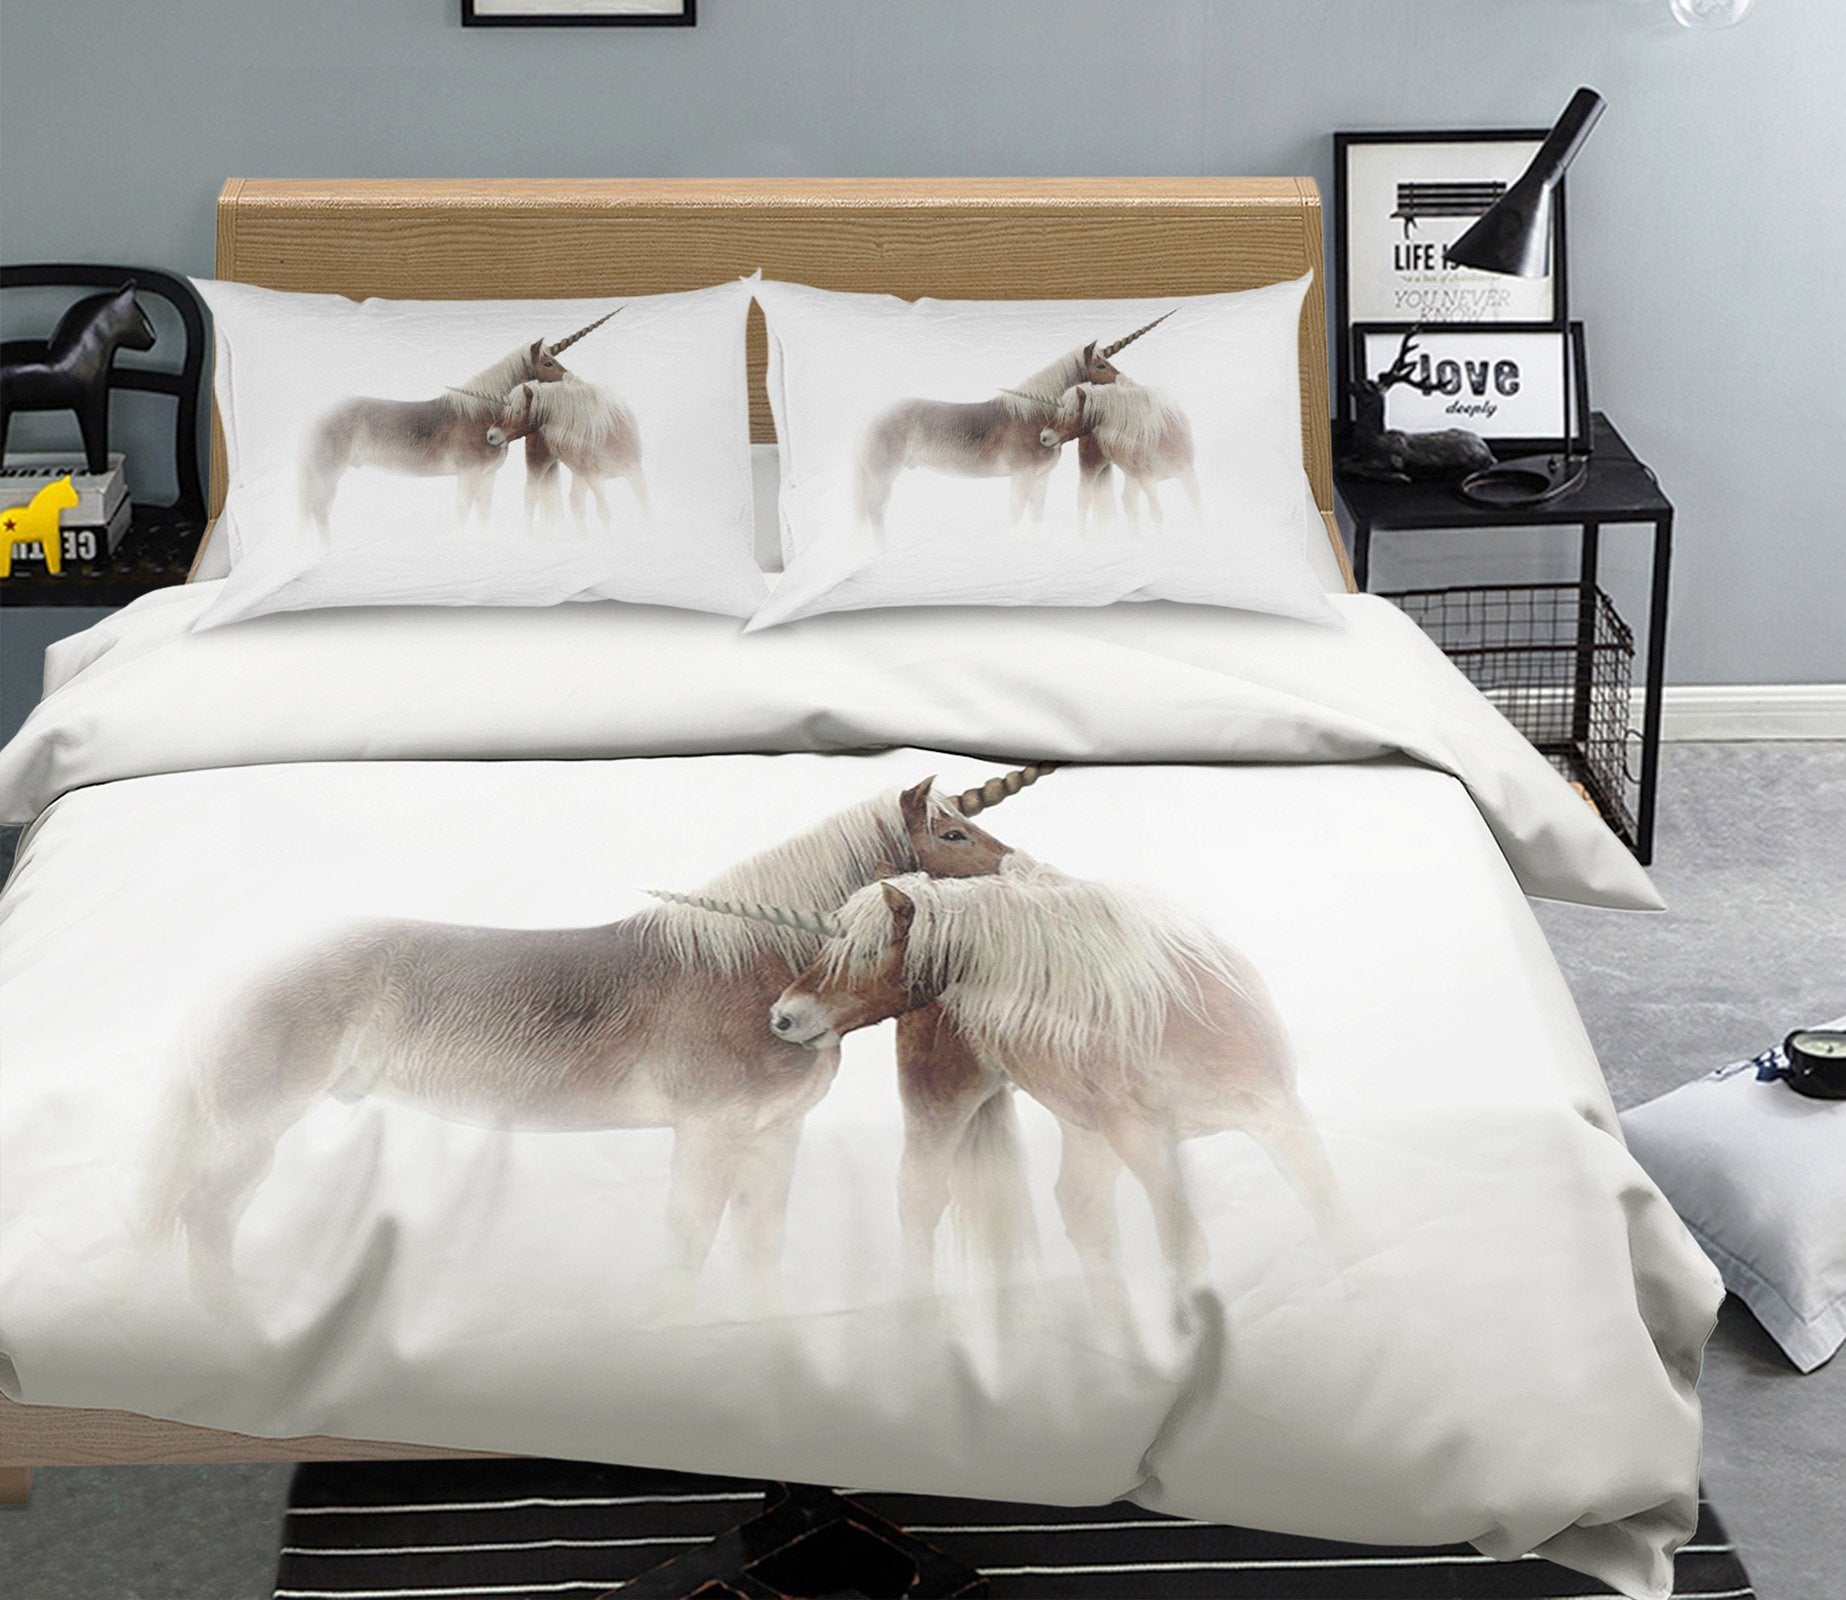 3D Embrace Unicorn 055 Bed Pillowcases Quilt Wallpaper AJ Wallpaper